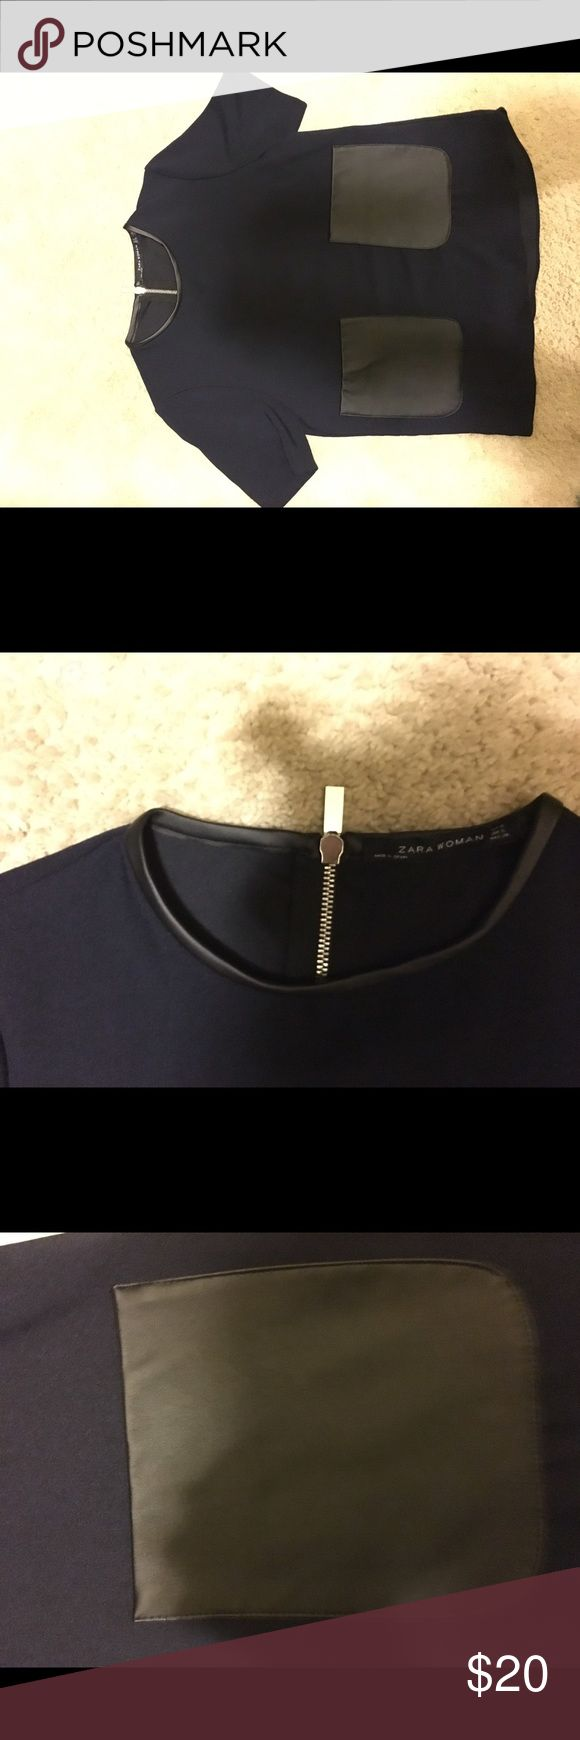 Cute ZARA navy top Navy short sleeve top with faux leather pocket detail Zara Tops Blouses